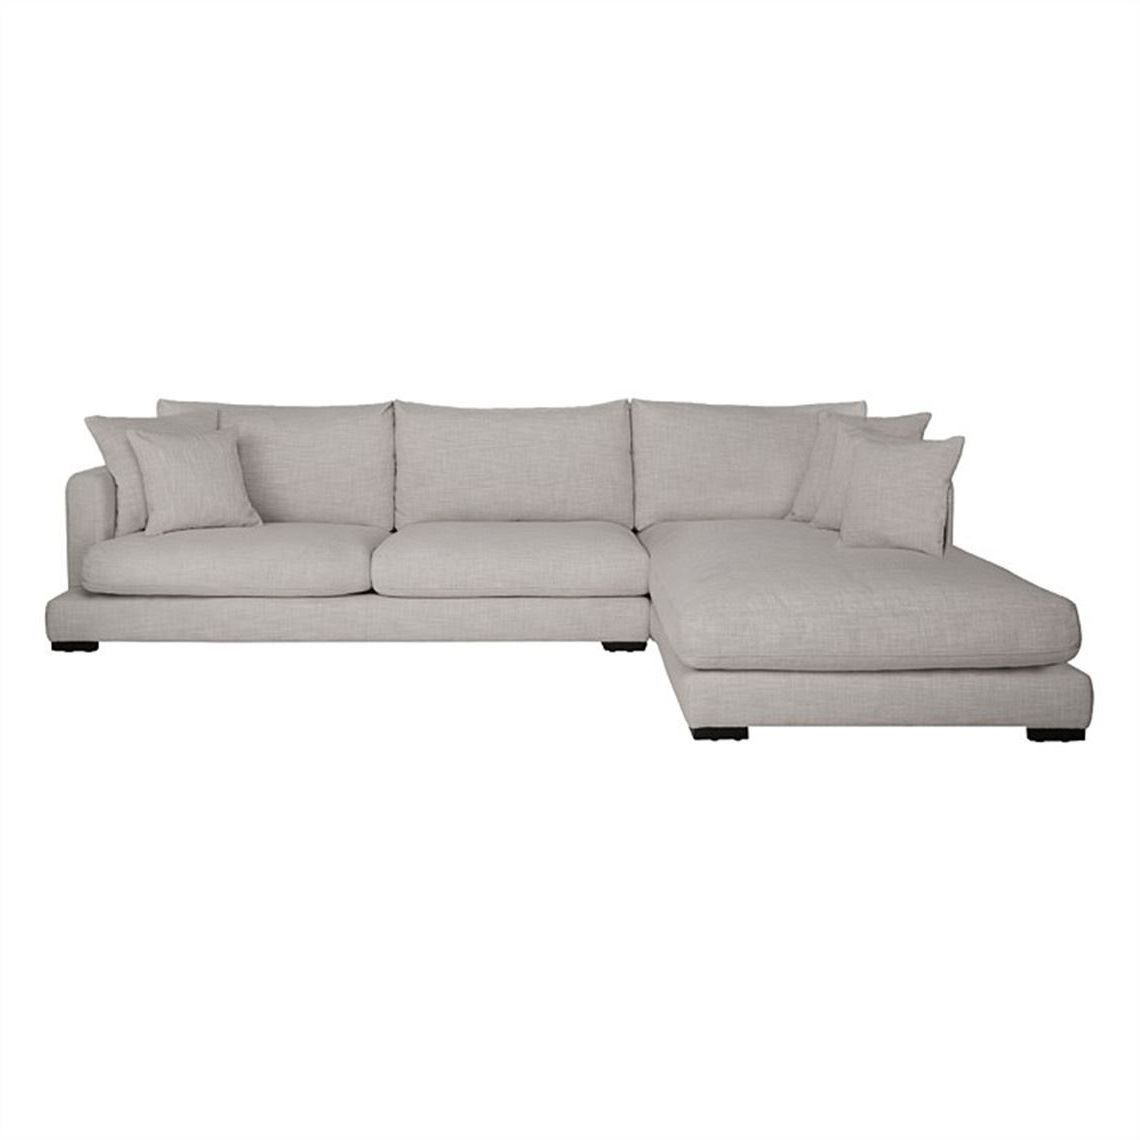 Hamilton 3 Seat Fabric Modular Sofa With Right Chaise Modular Sofa Fabric Sofa Hamilton Sofa